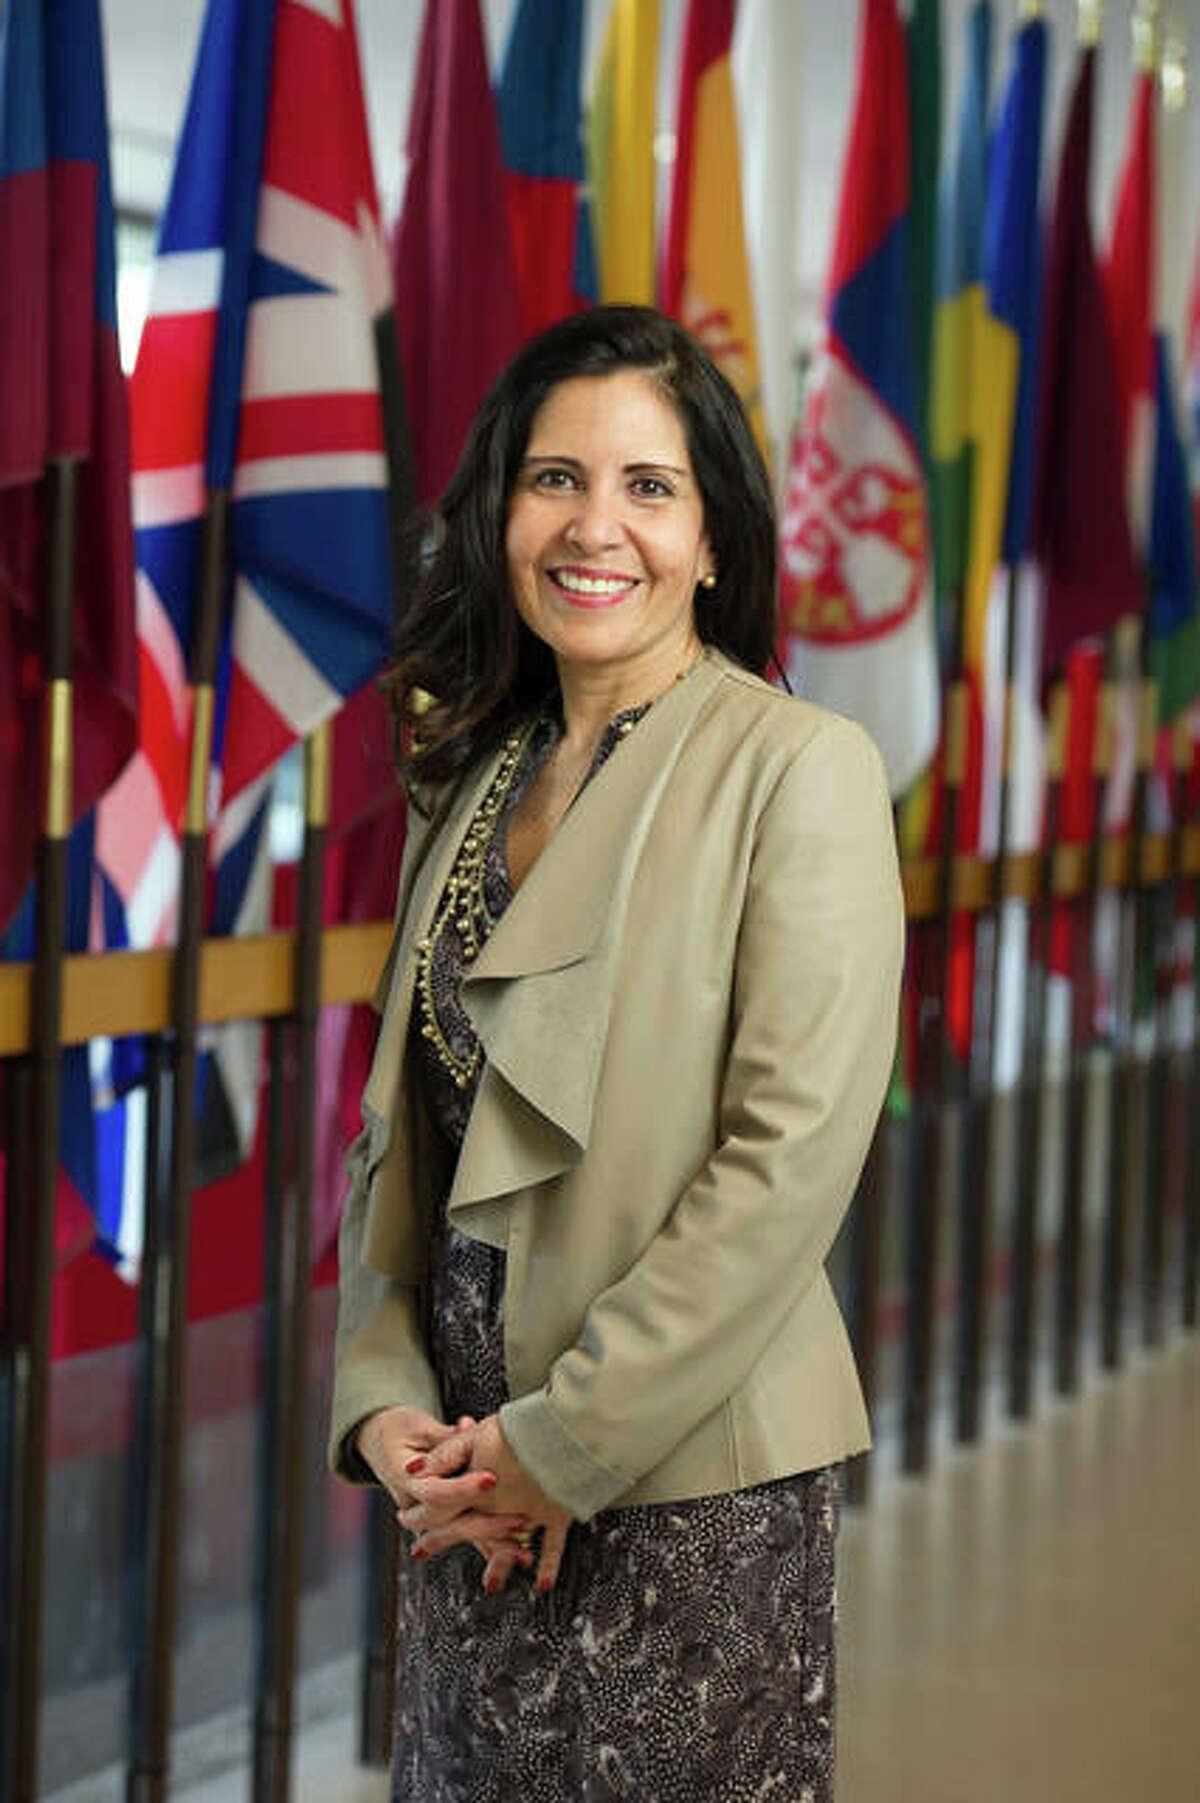 Silvia Torres Bowman is the director of the Illinois SBDC International Trade Center (ITC) at Southern Illinois University Edwardsville.